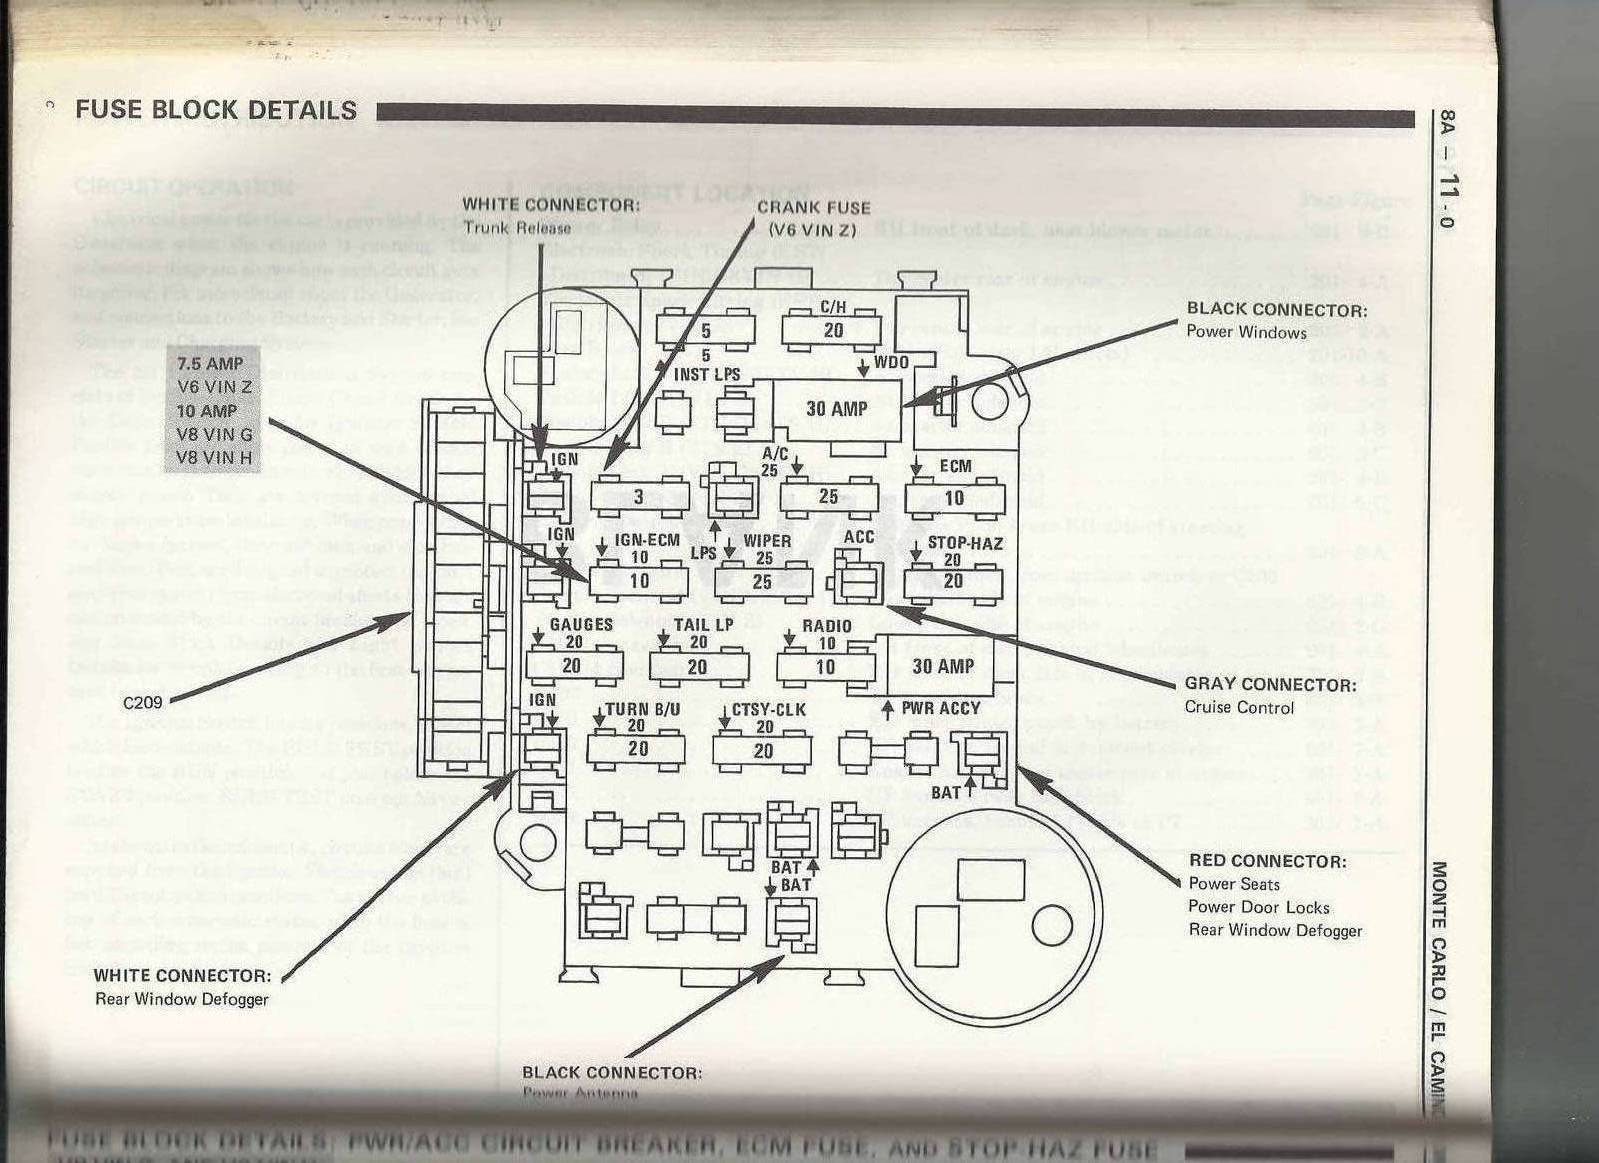 1987 El Camino Fuse Box - Wiring Diagram •